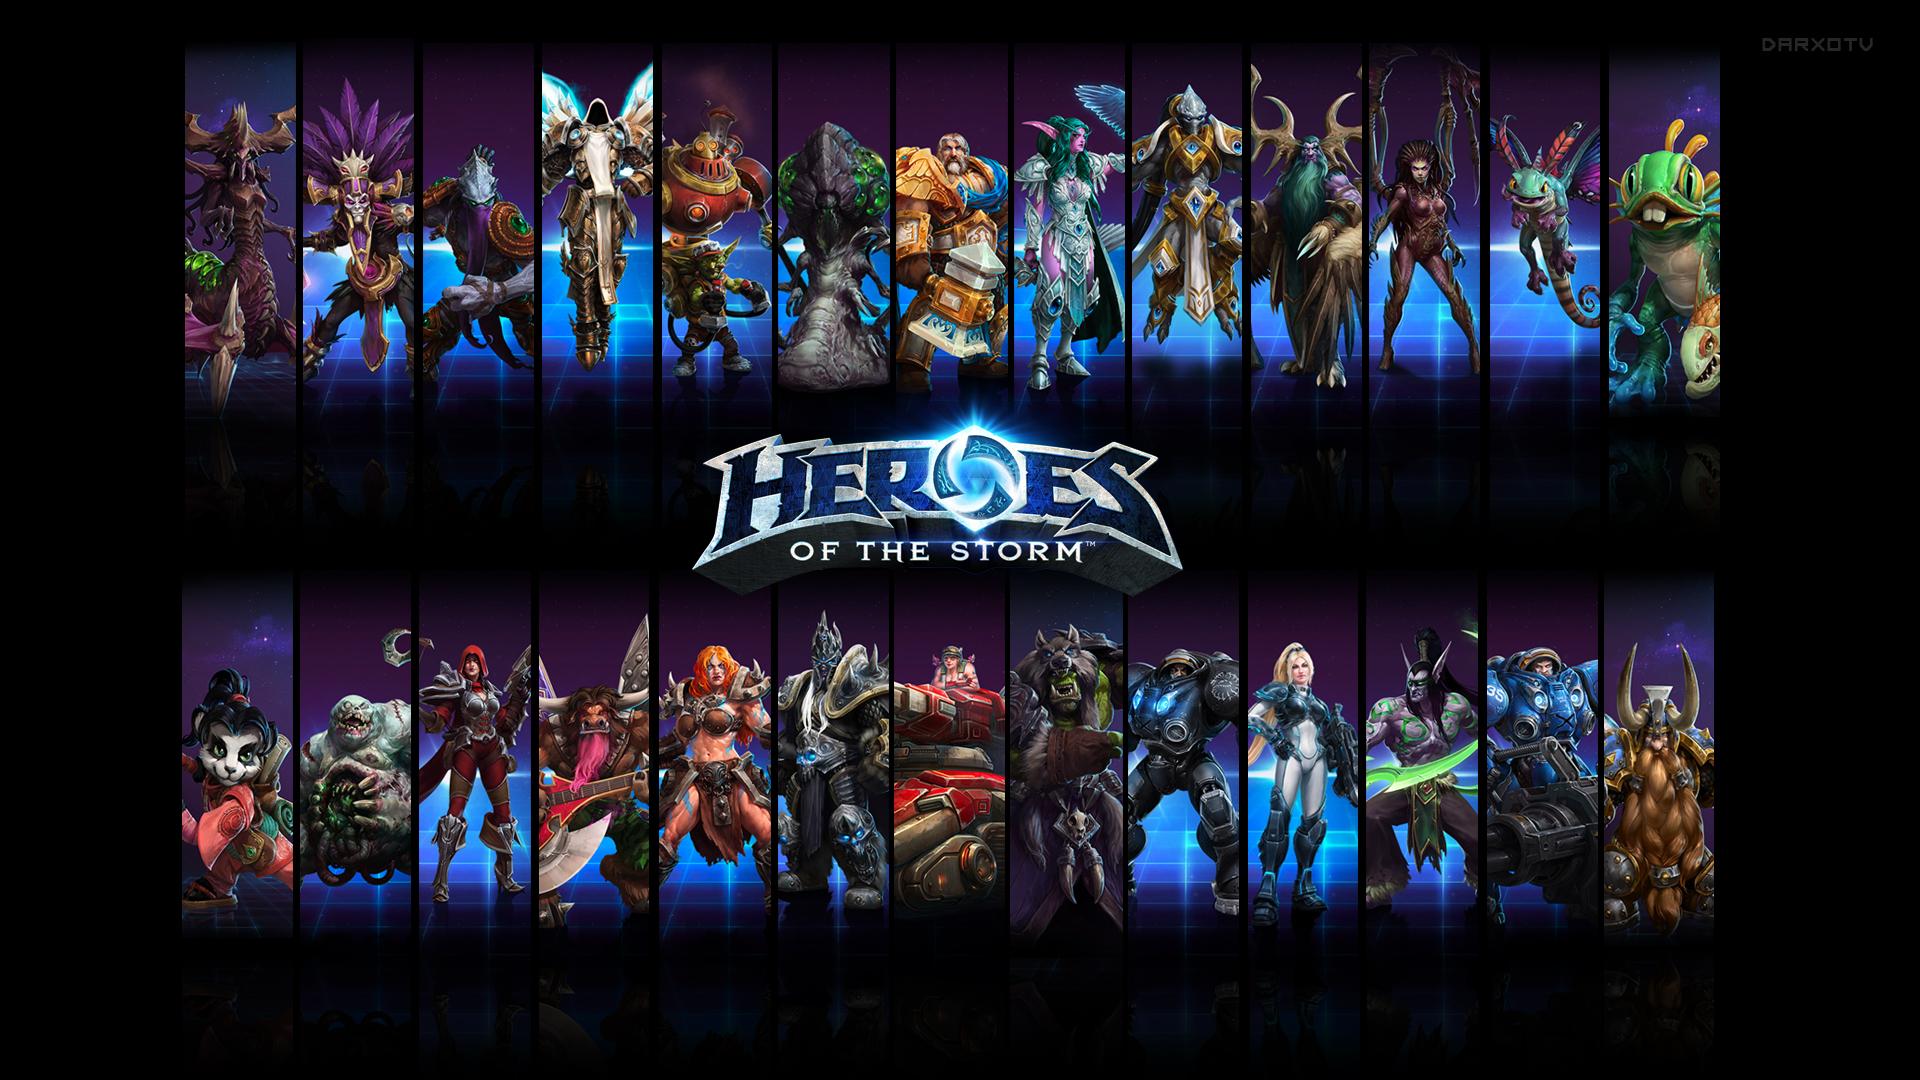 Heroes Blizzard Entertainment Wallpapers 1920x1080